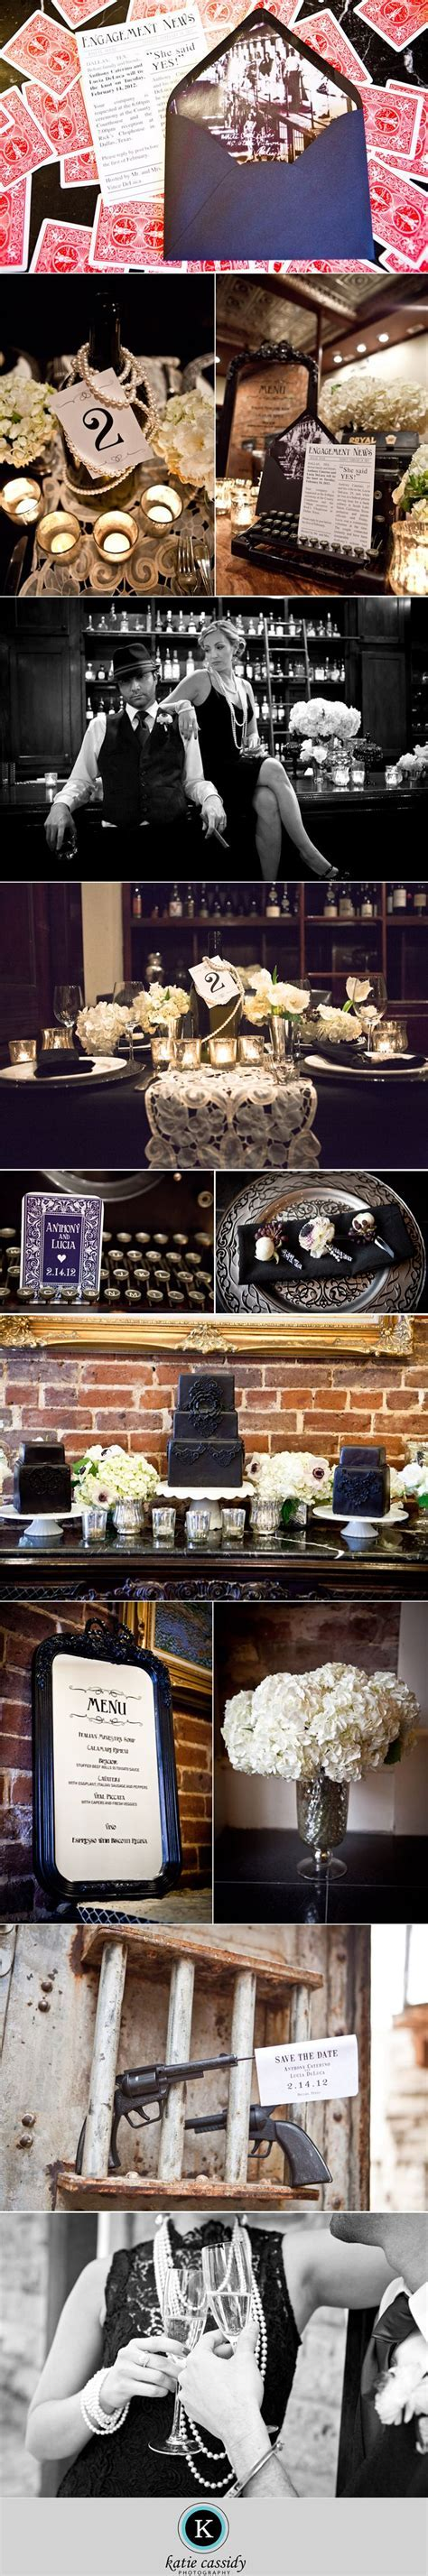 101 best images about Speakeasy Party Ideas on Pinterest